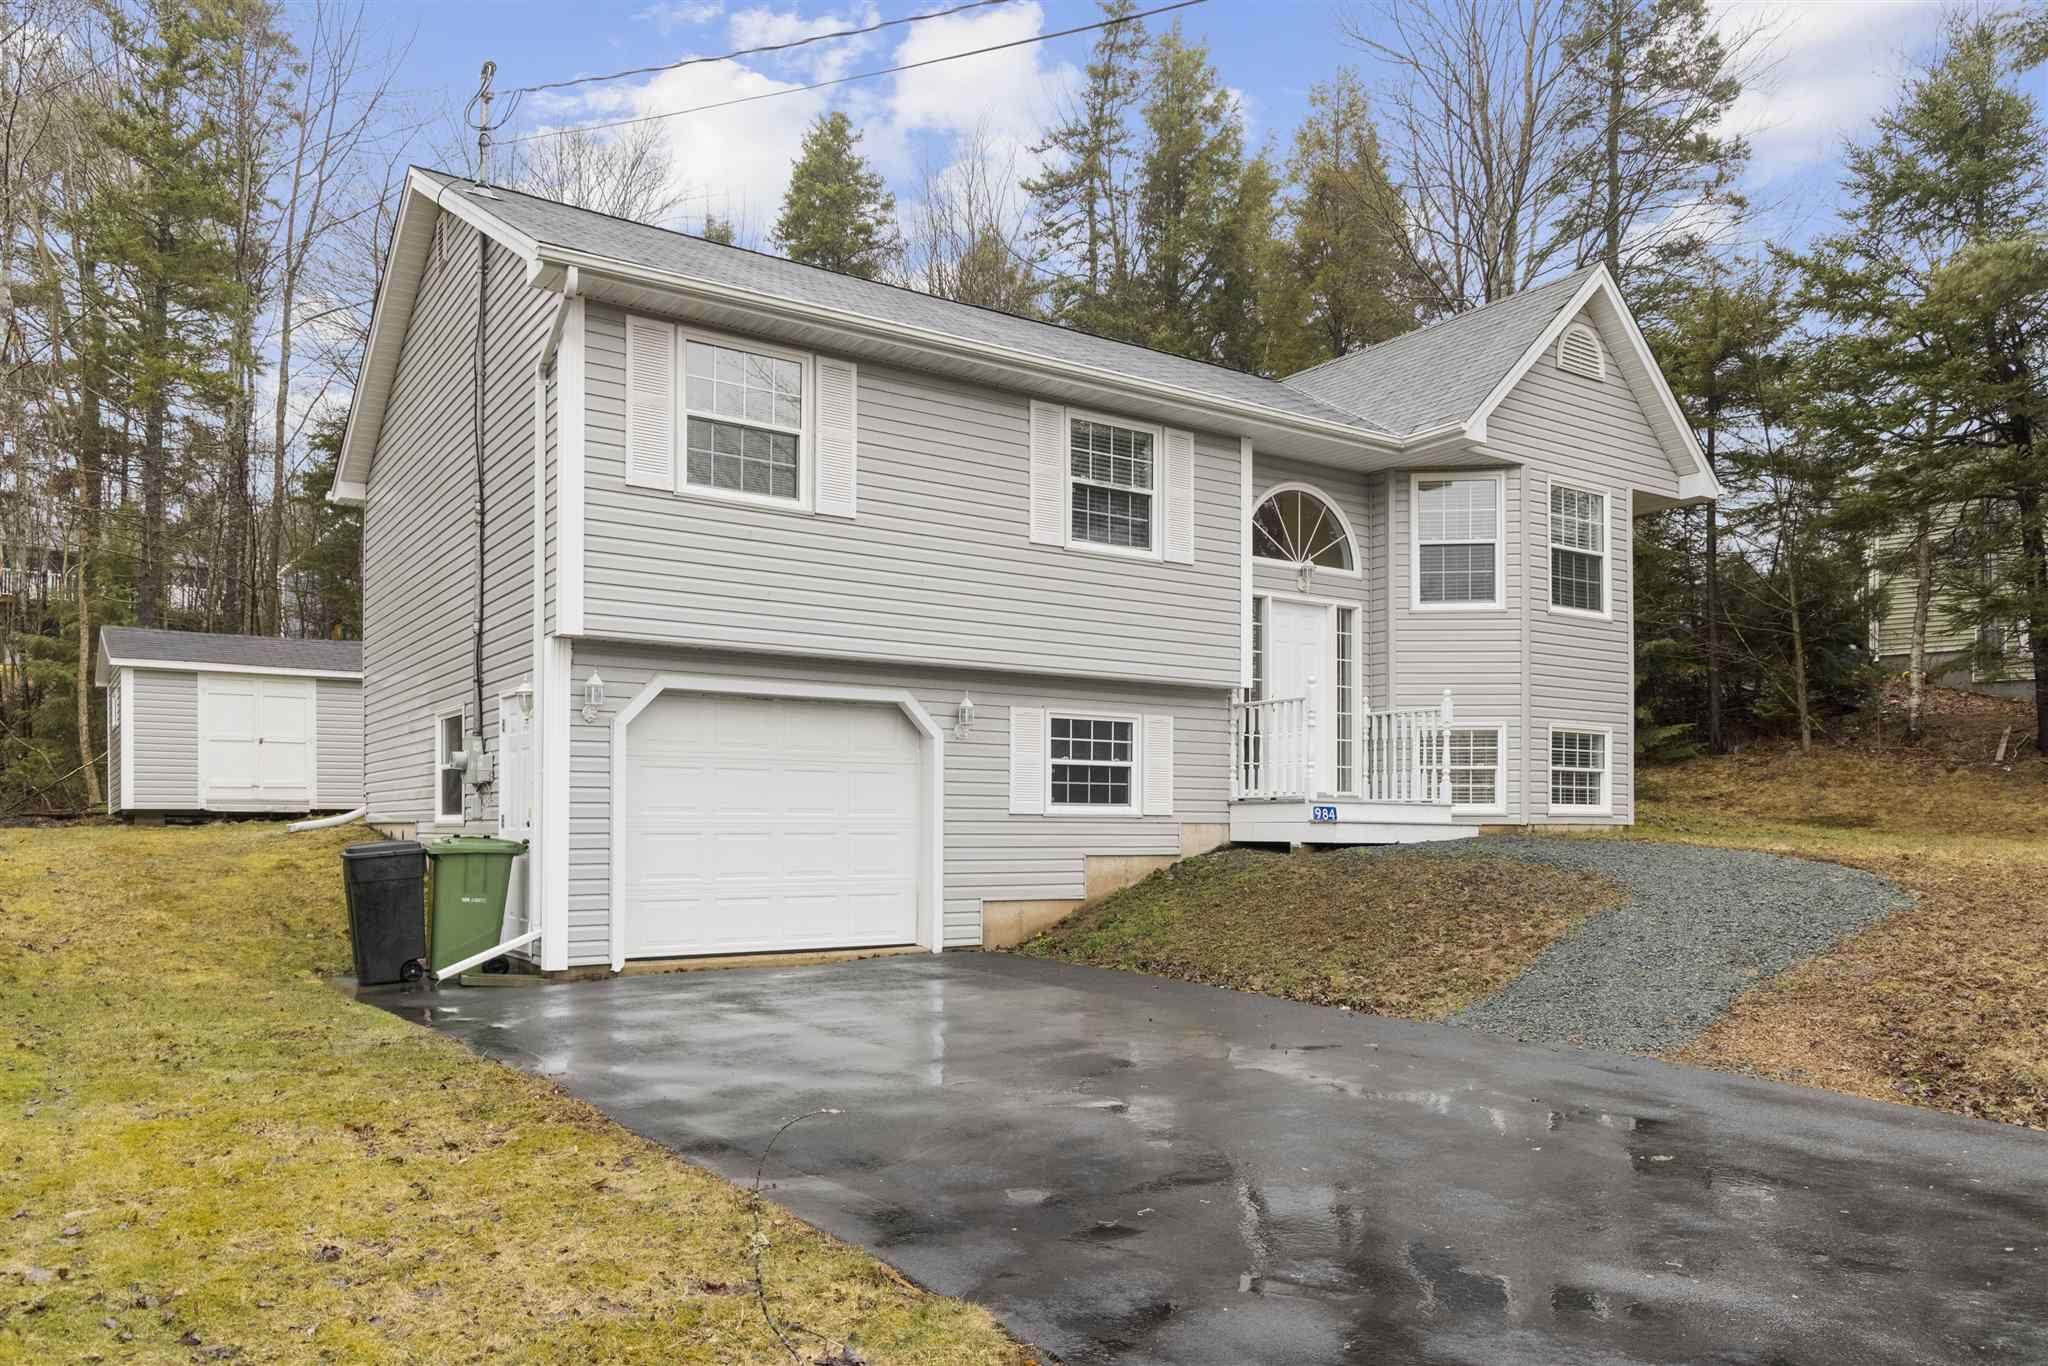 Main Photo: 984 Beaver Bank Road in Beaver Bank: 26-Beaverbank, Upper Sackville Residential for sale (Halifax-Dartmouth)  : MLS®# 202107220